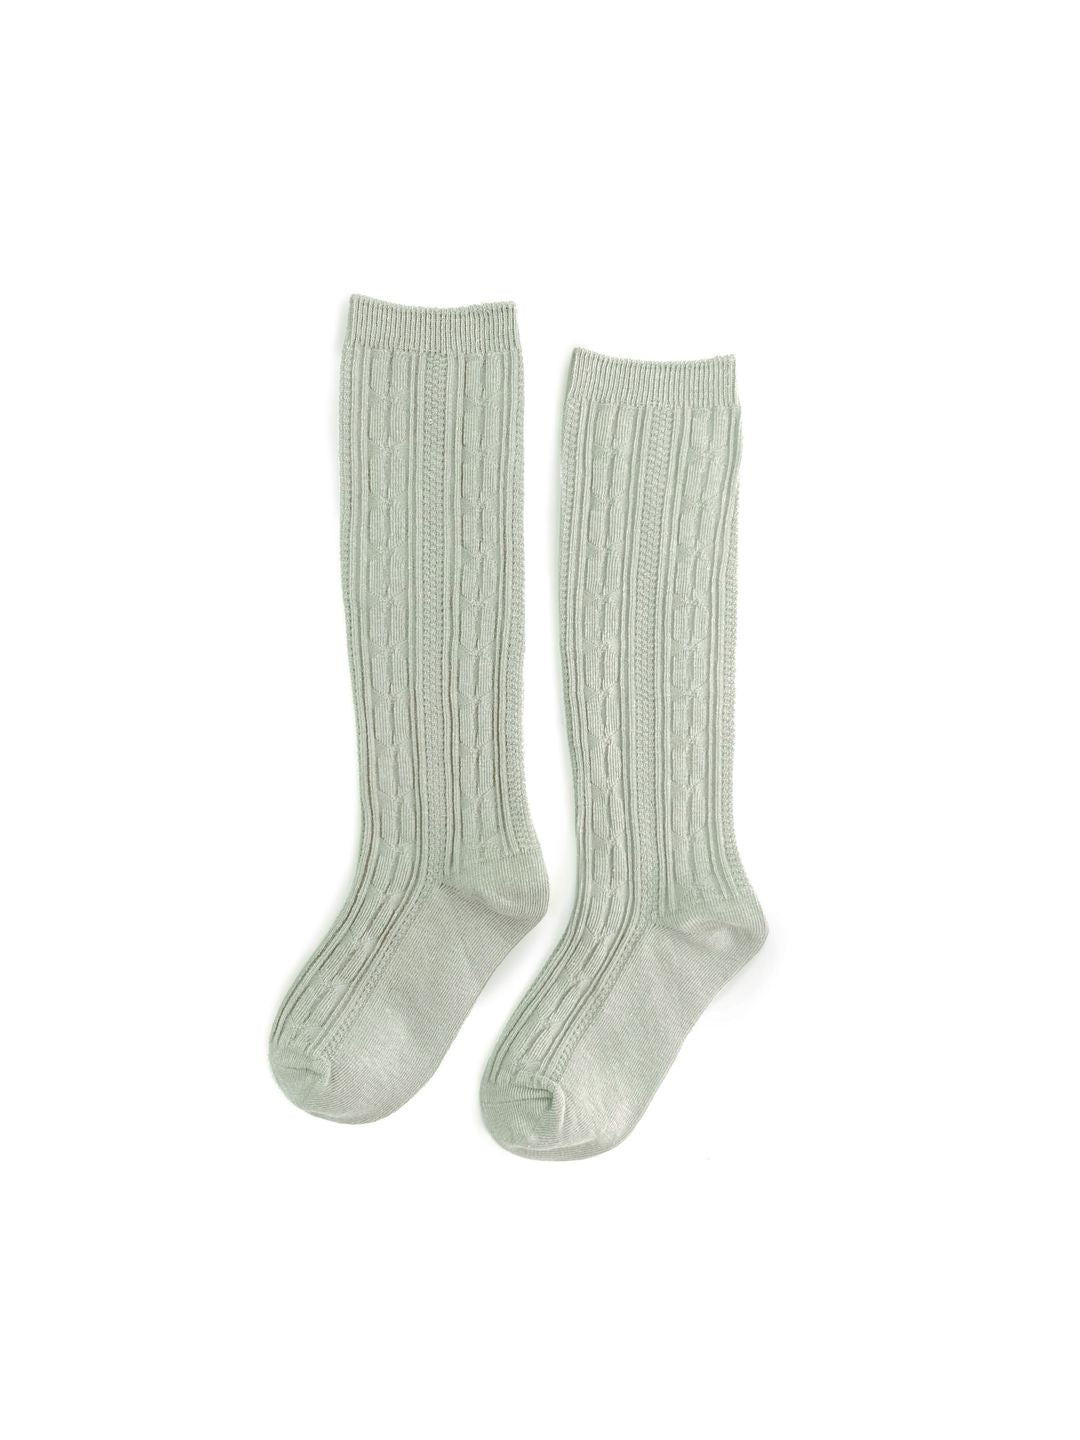 Sage Knit Knee High Socks